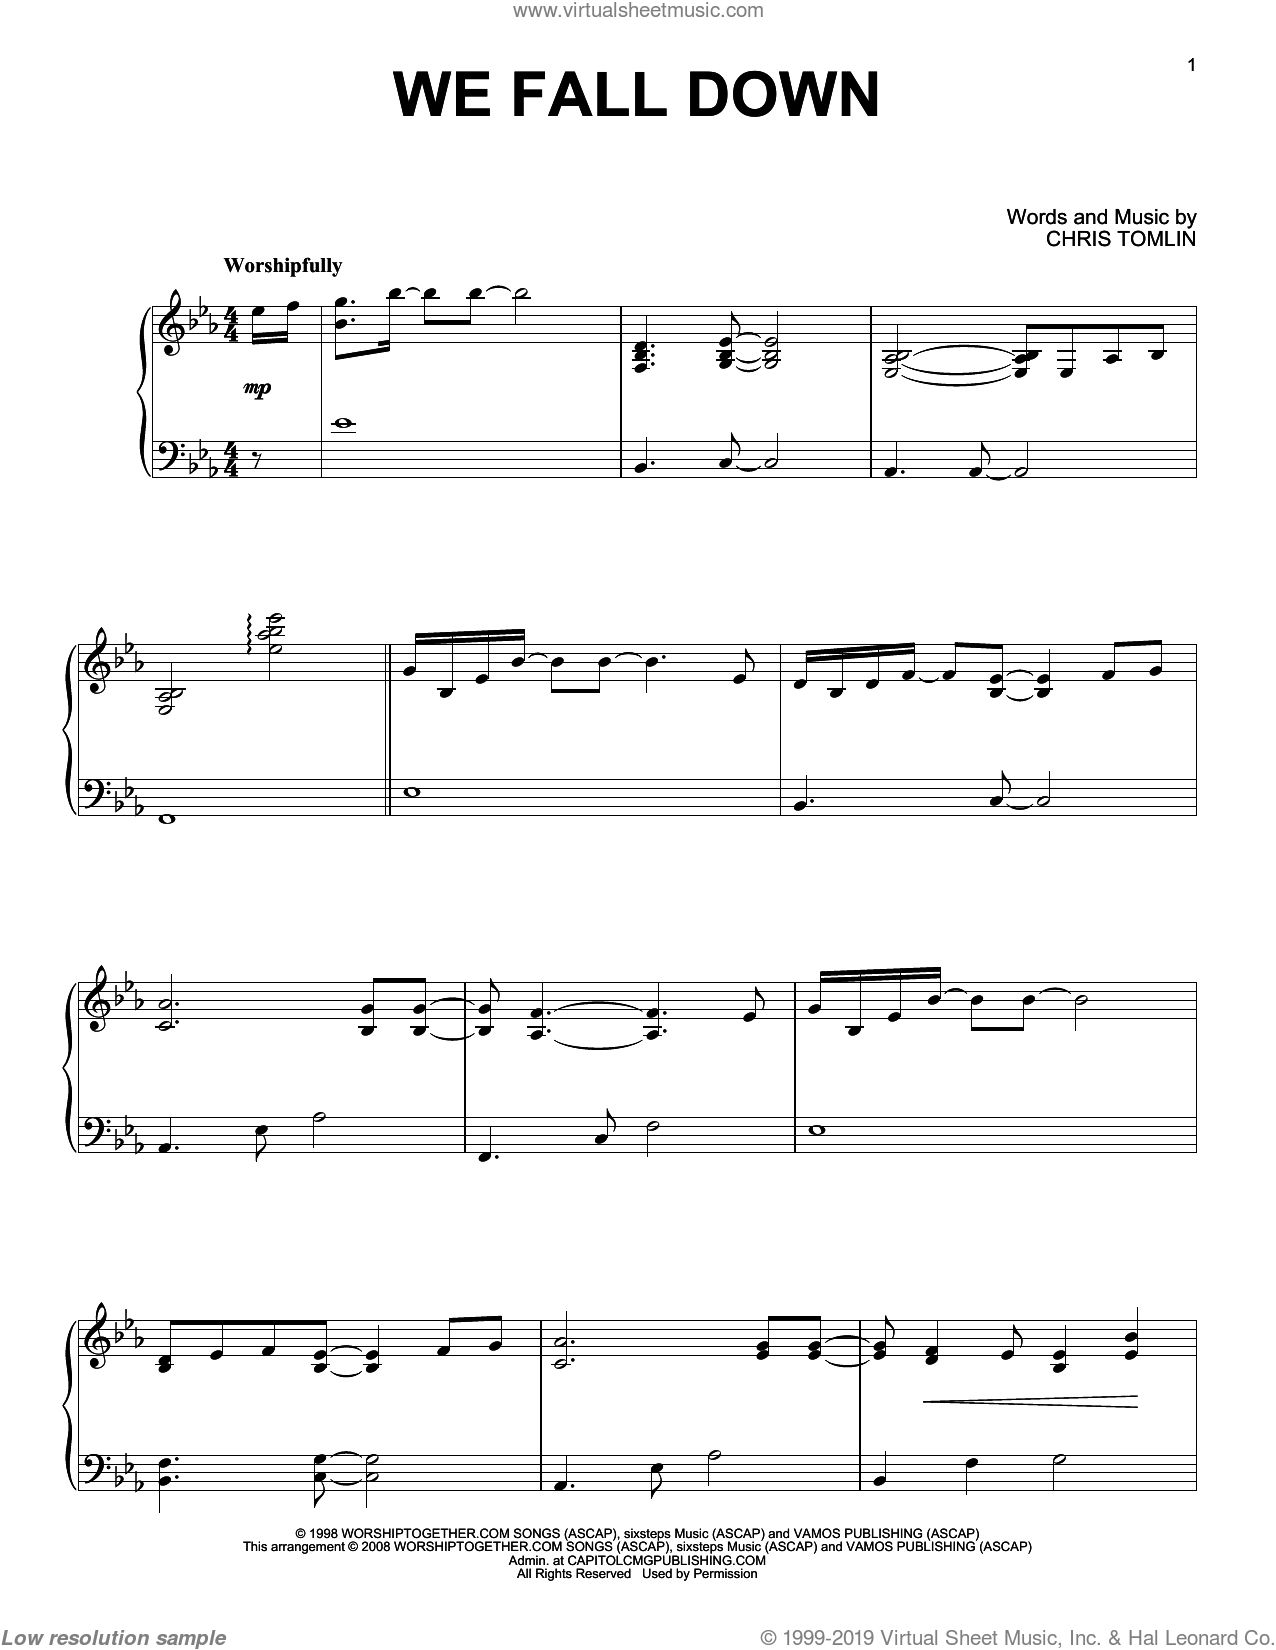 We Fall Down sheet music for piano solo by Chris Tomlin and Kutless, intermediate skill level